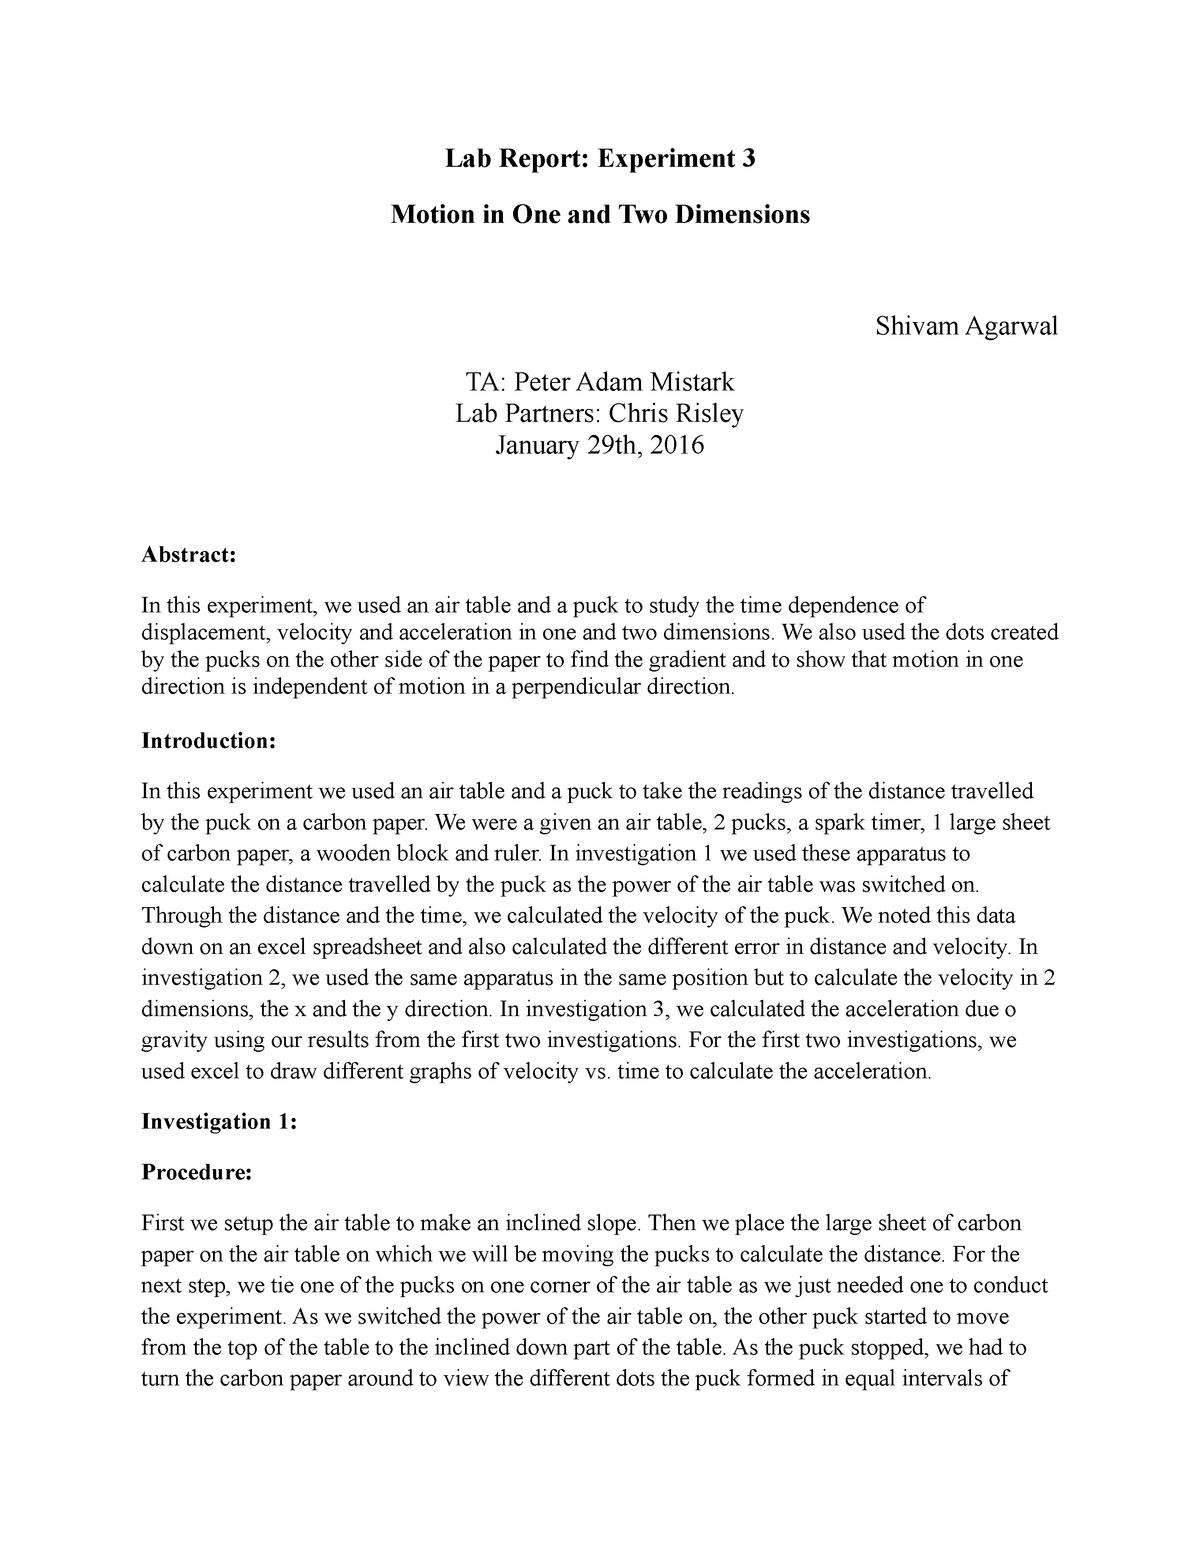 Motion in One and Two Dimensions - Lab For Phys 1151 - NU